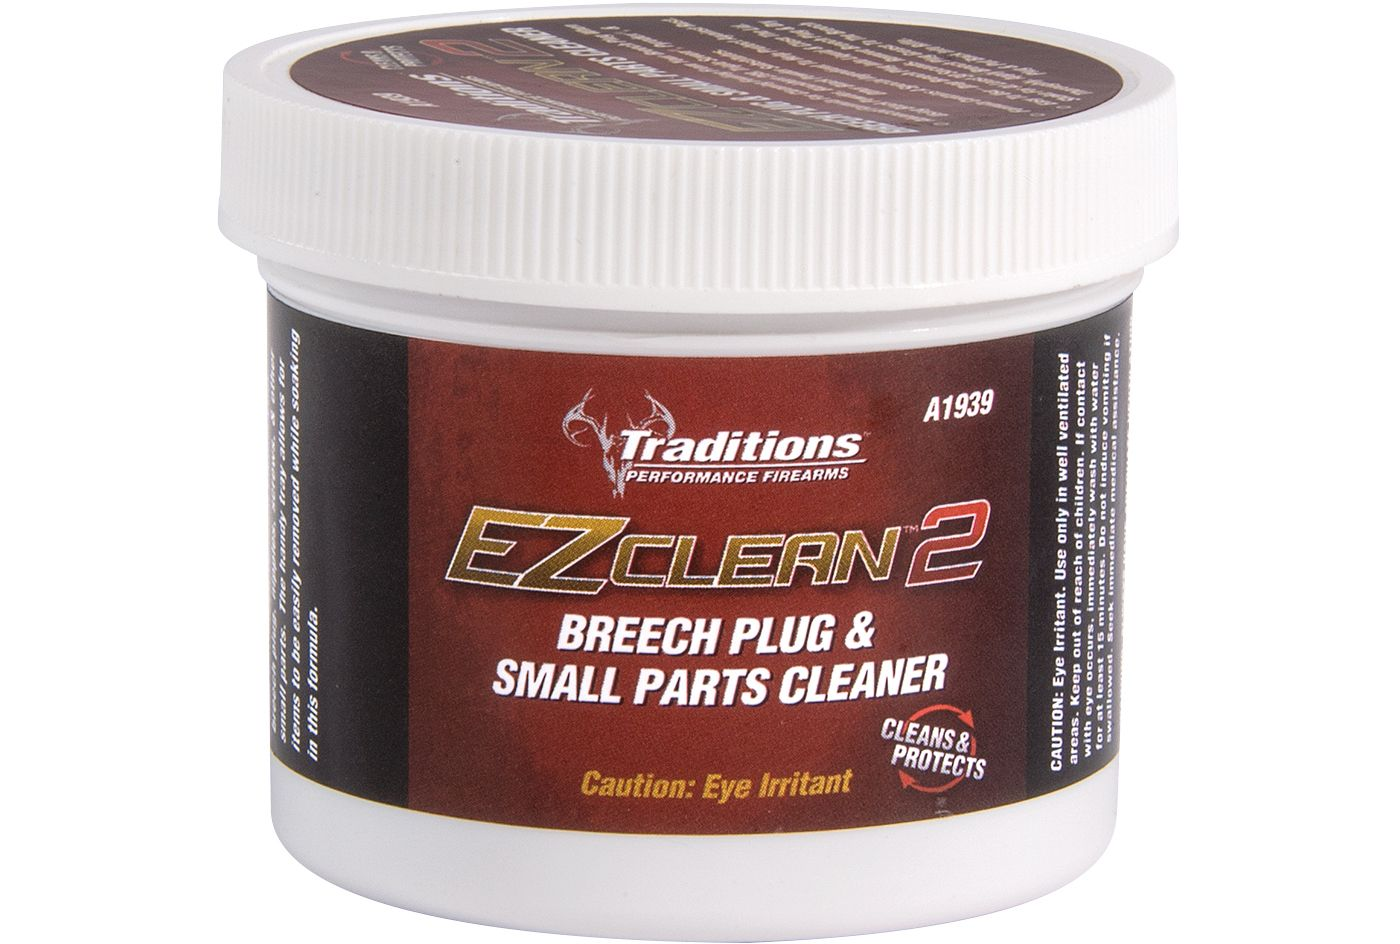 Traditions EZ Clean 2 Breech Plug and Small Parts Cleaner